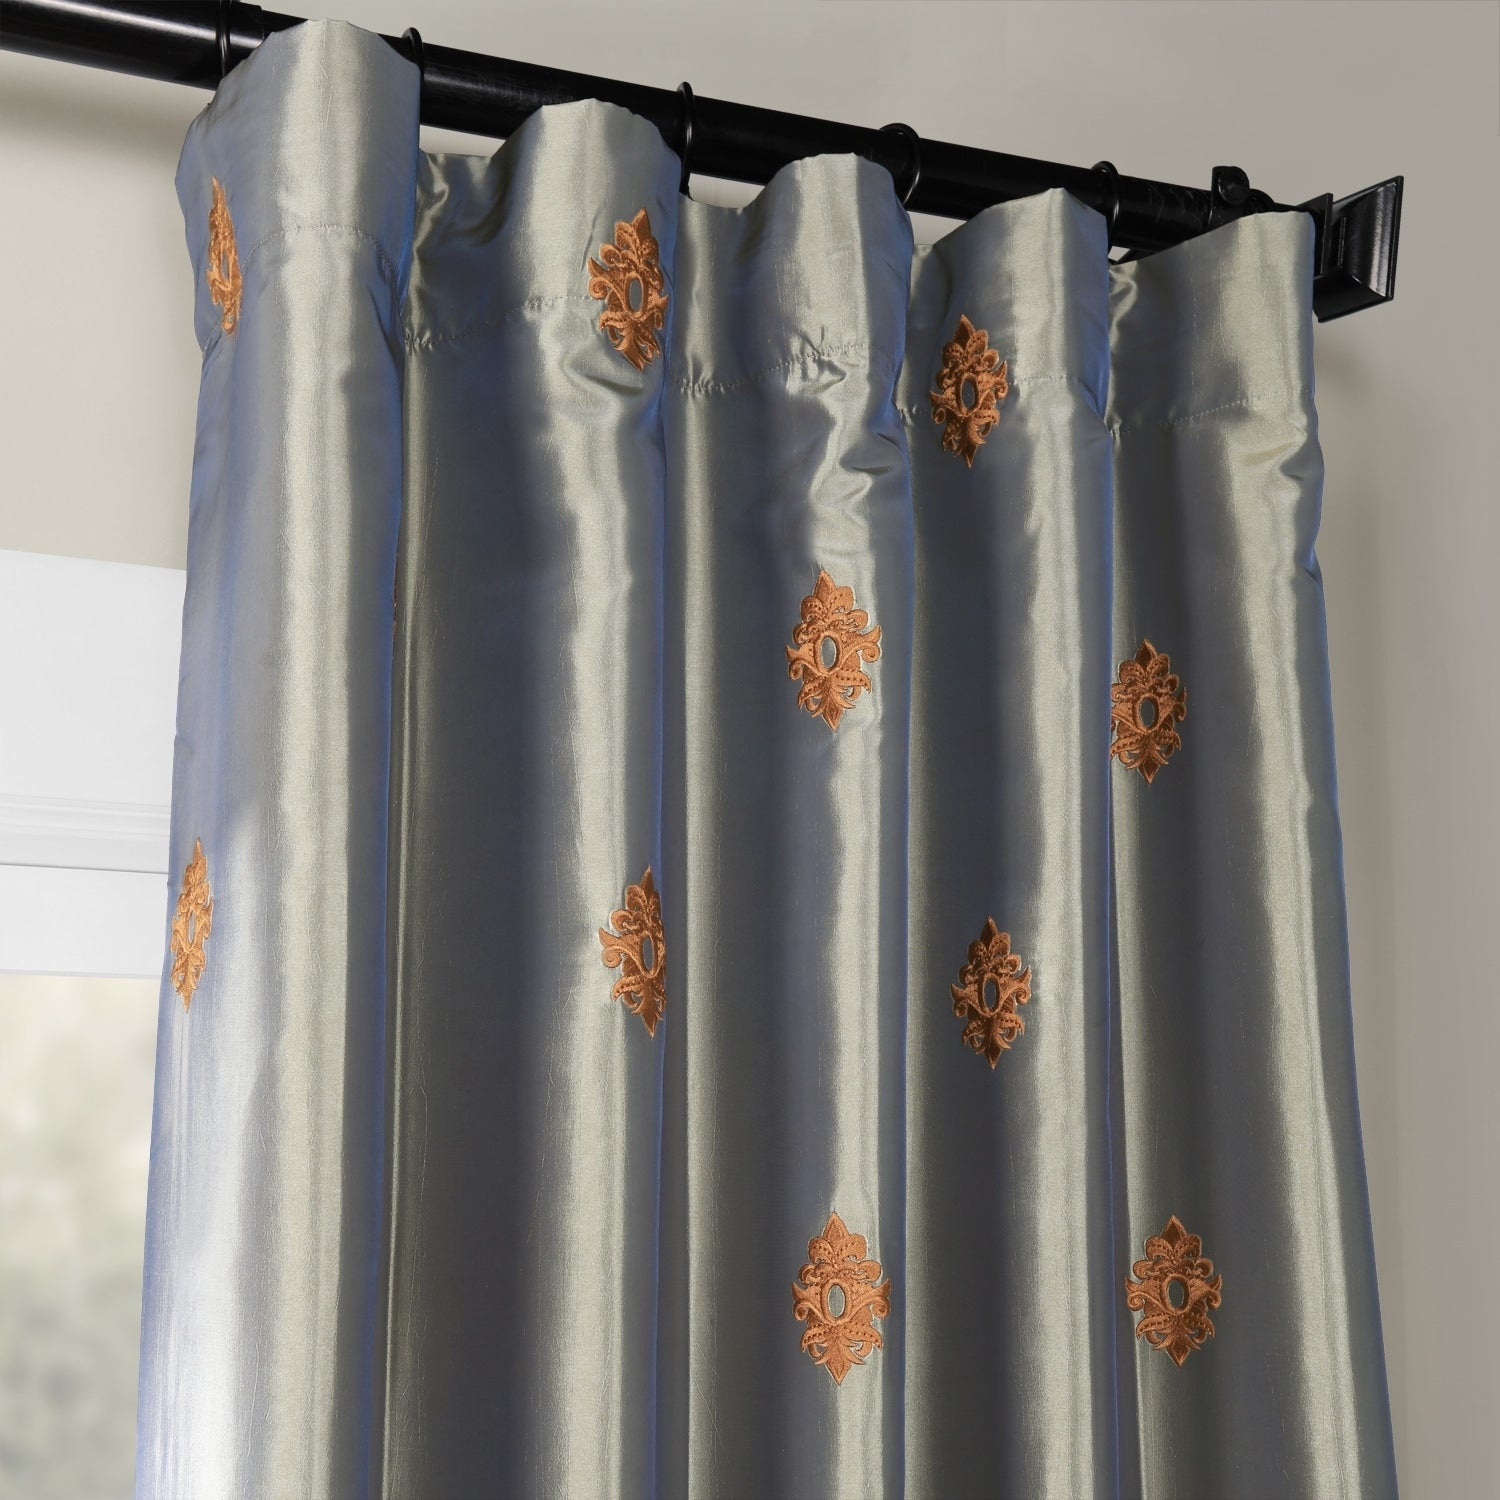 Details About Porch & Den Oberst Embroidered Taffeta Curtain Panel for Porch & Den Lorentz Silver 24-Inch Tier Pairs (Image 5 of 20)